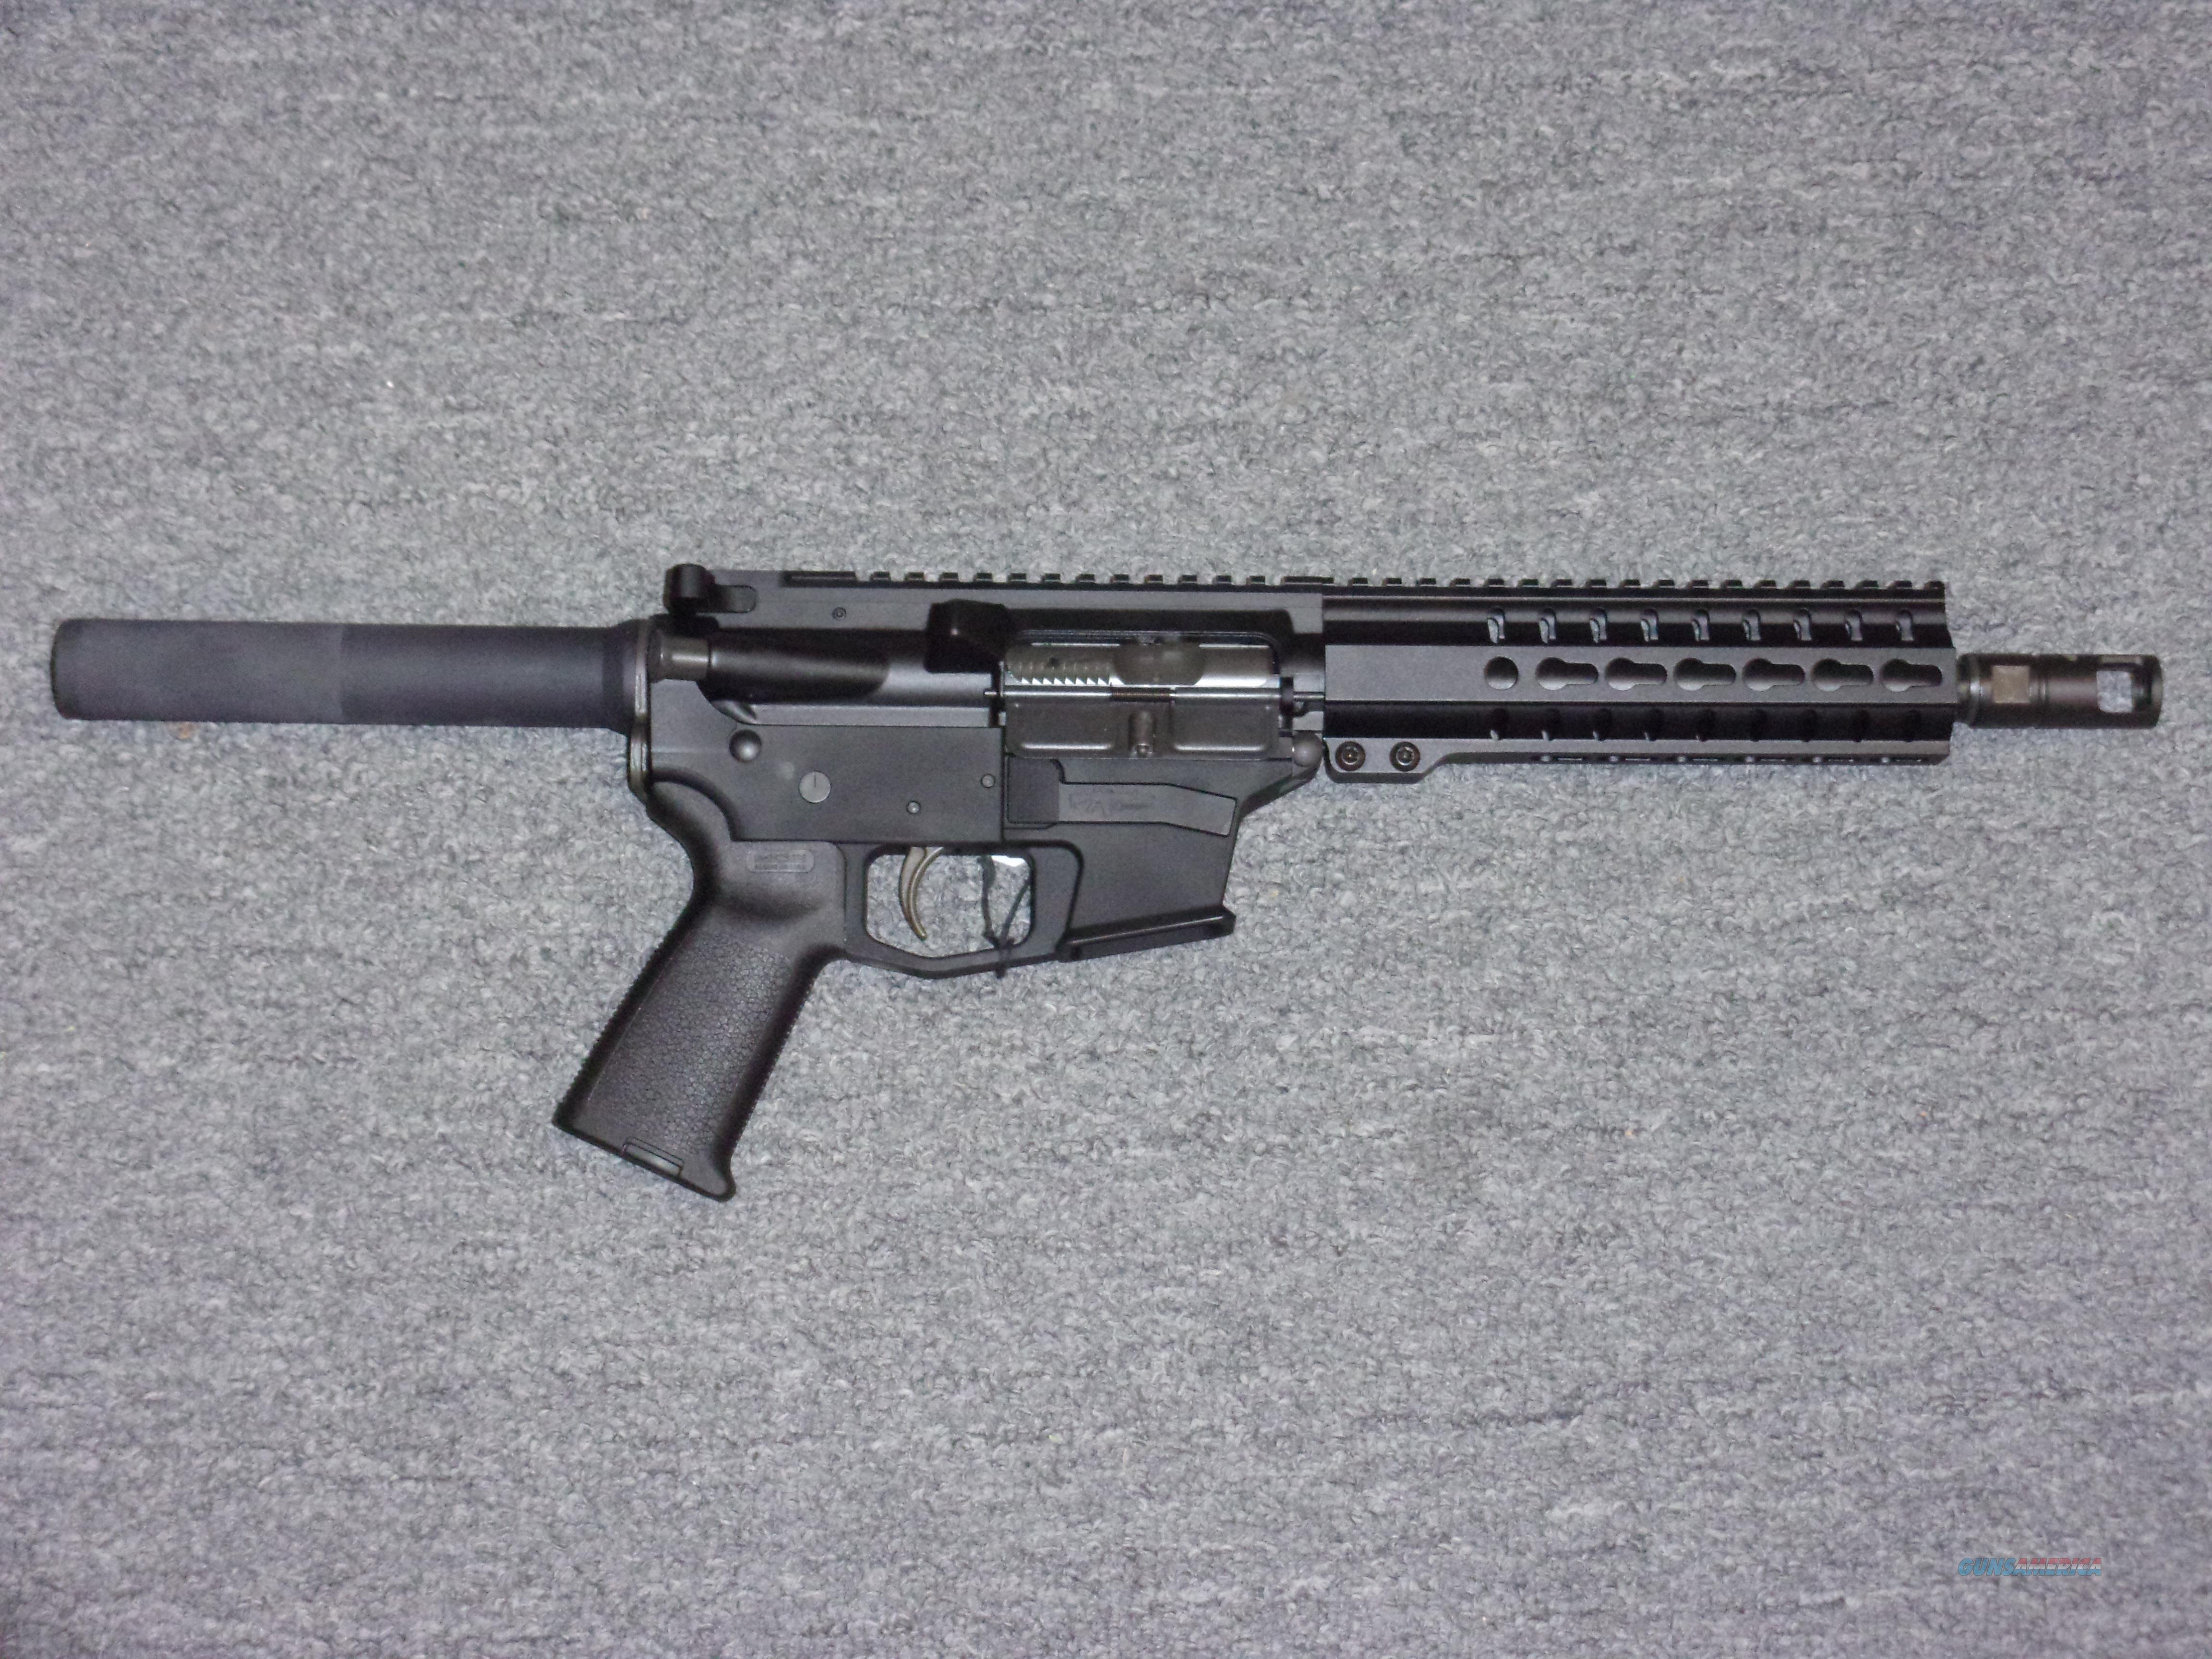 CMMG MKG-45 (uses Glock mags) for sale